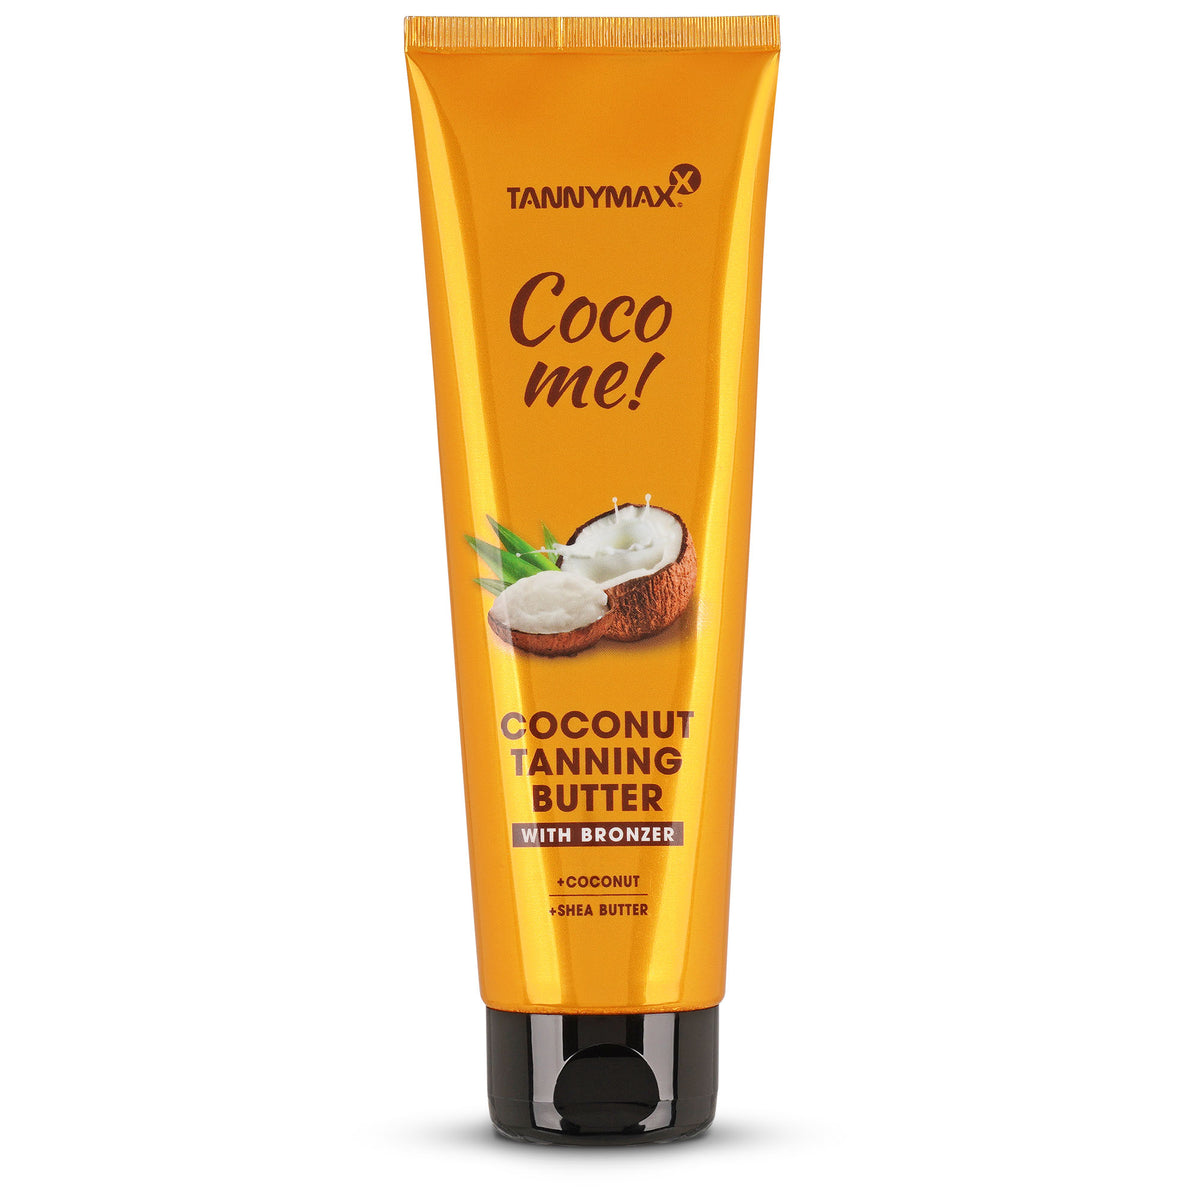 Coconut Tanning Butter + Bronzer